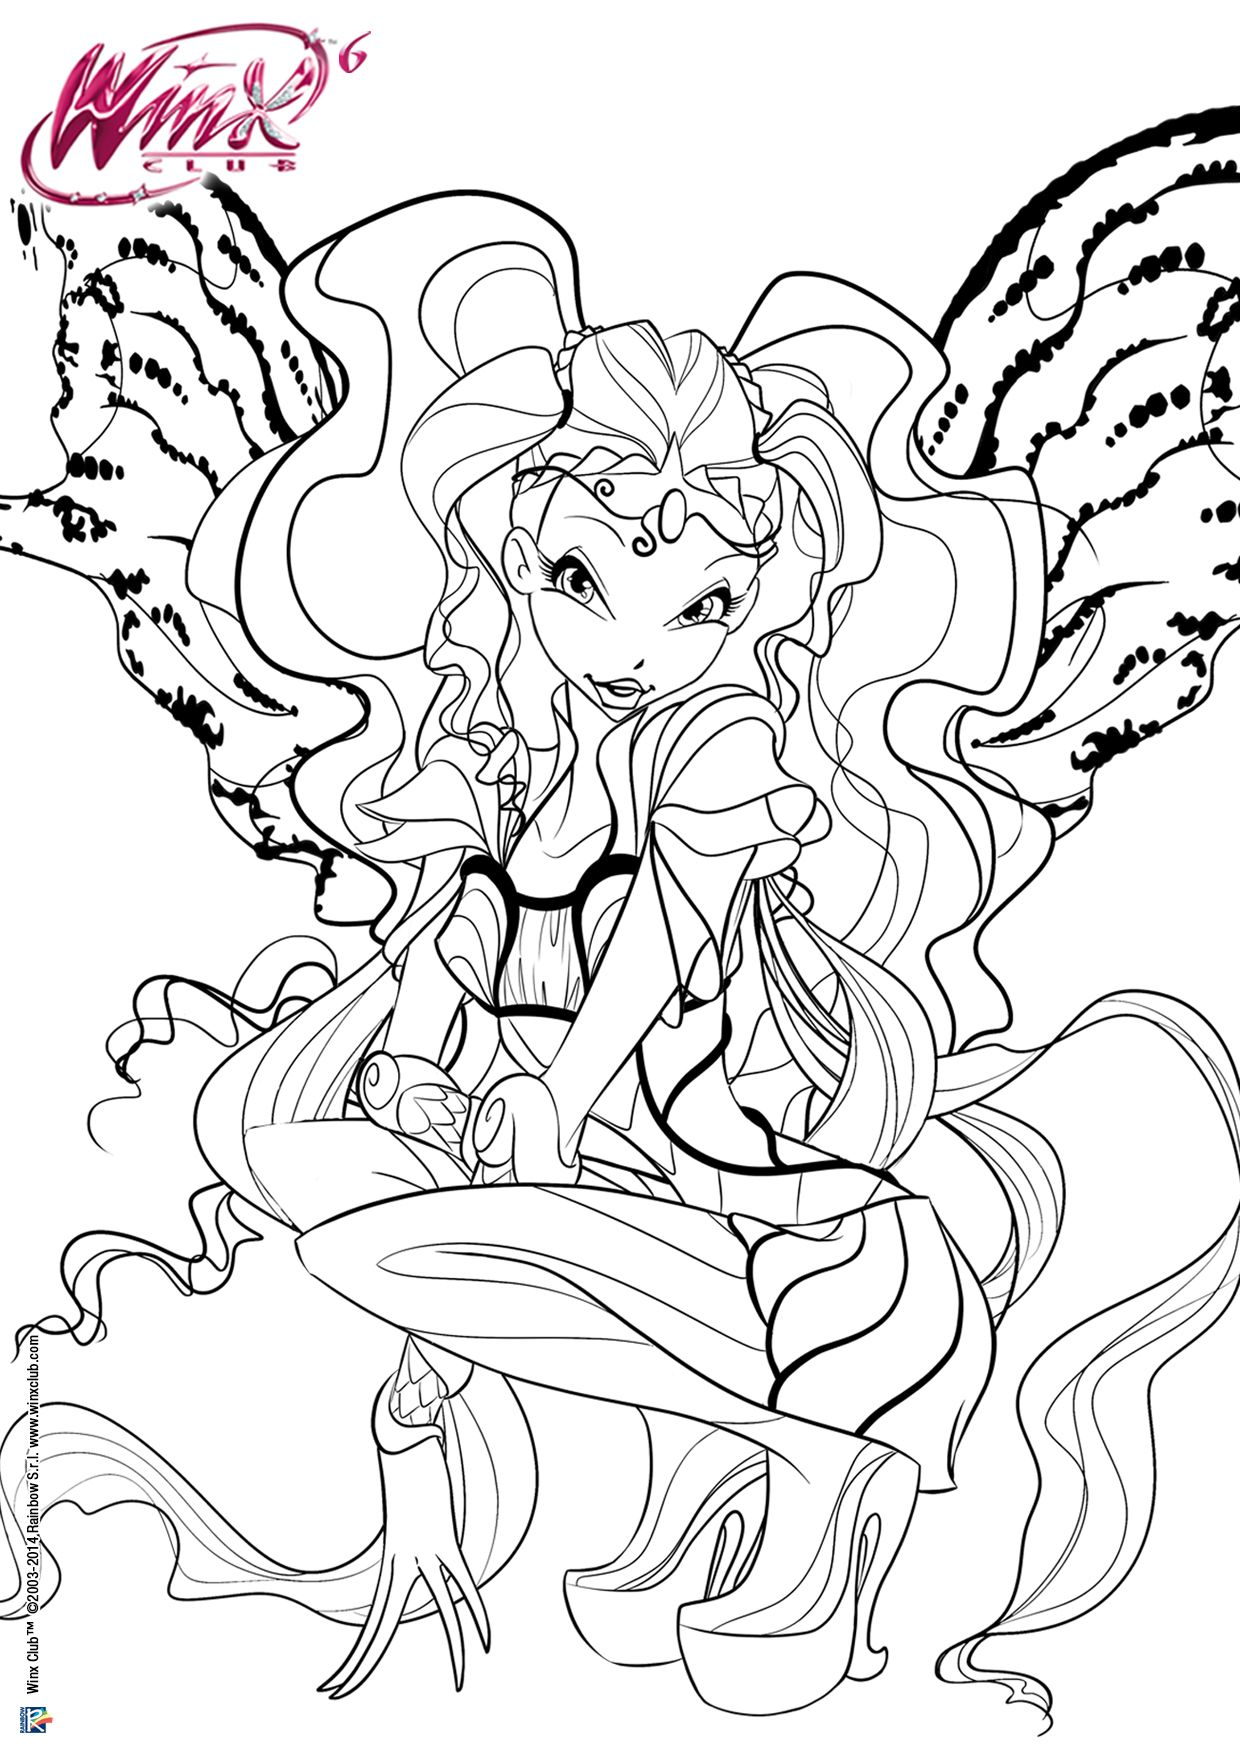 Winx Club Tumblr Fairy Coloring Pages Cartoon Coloring Pages Coloring Pages